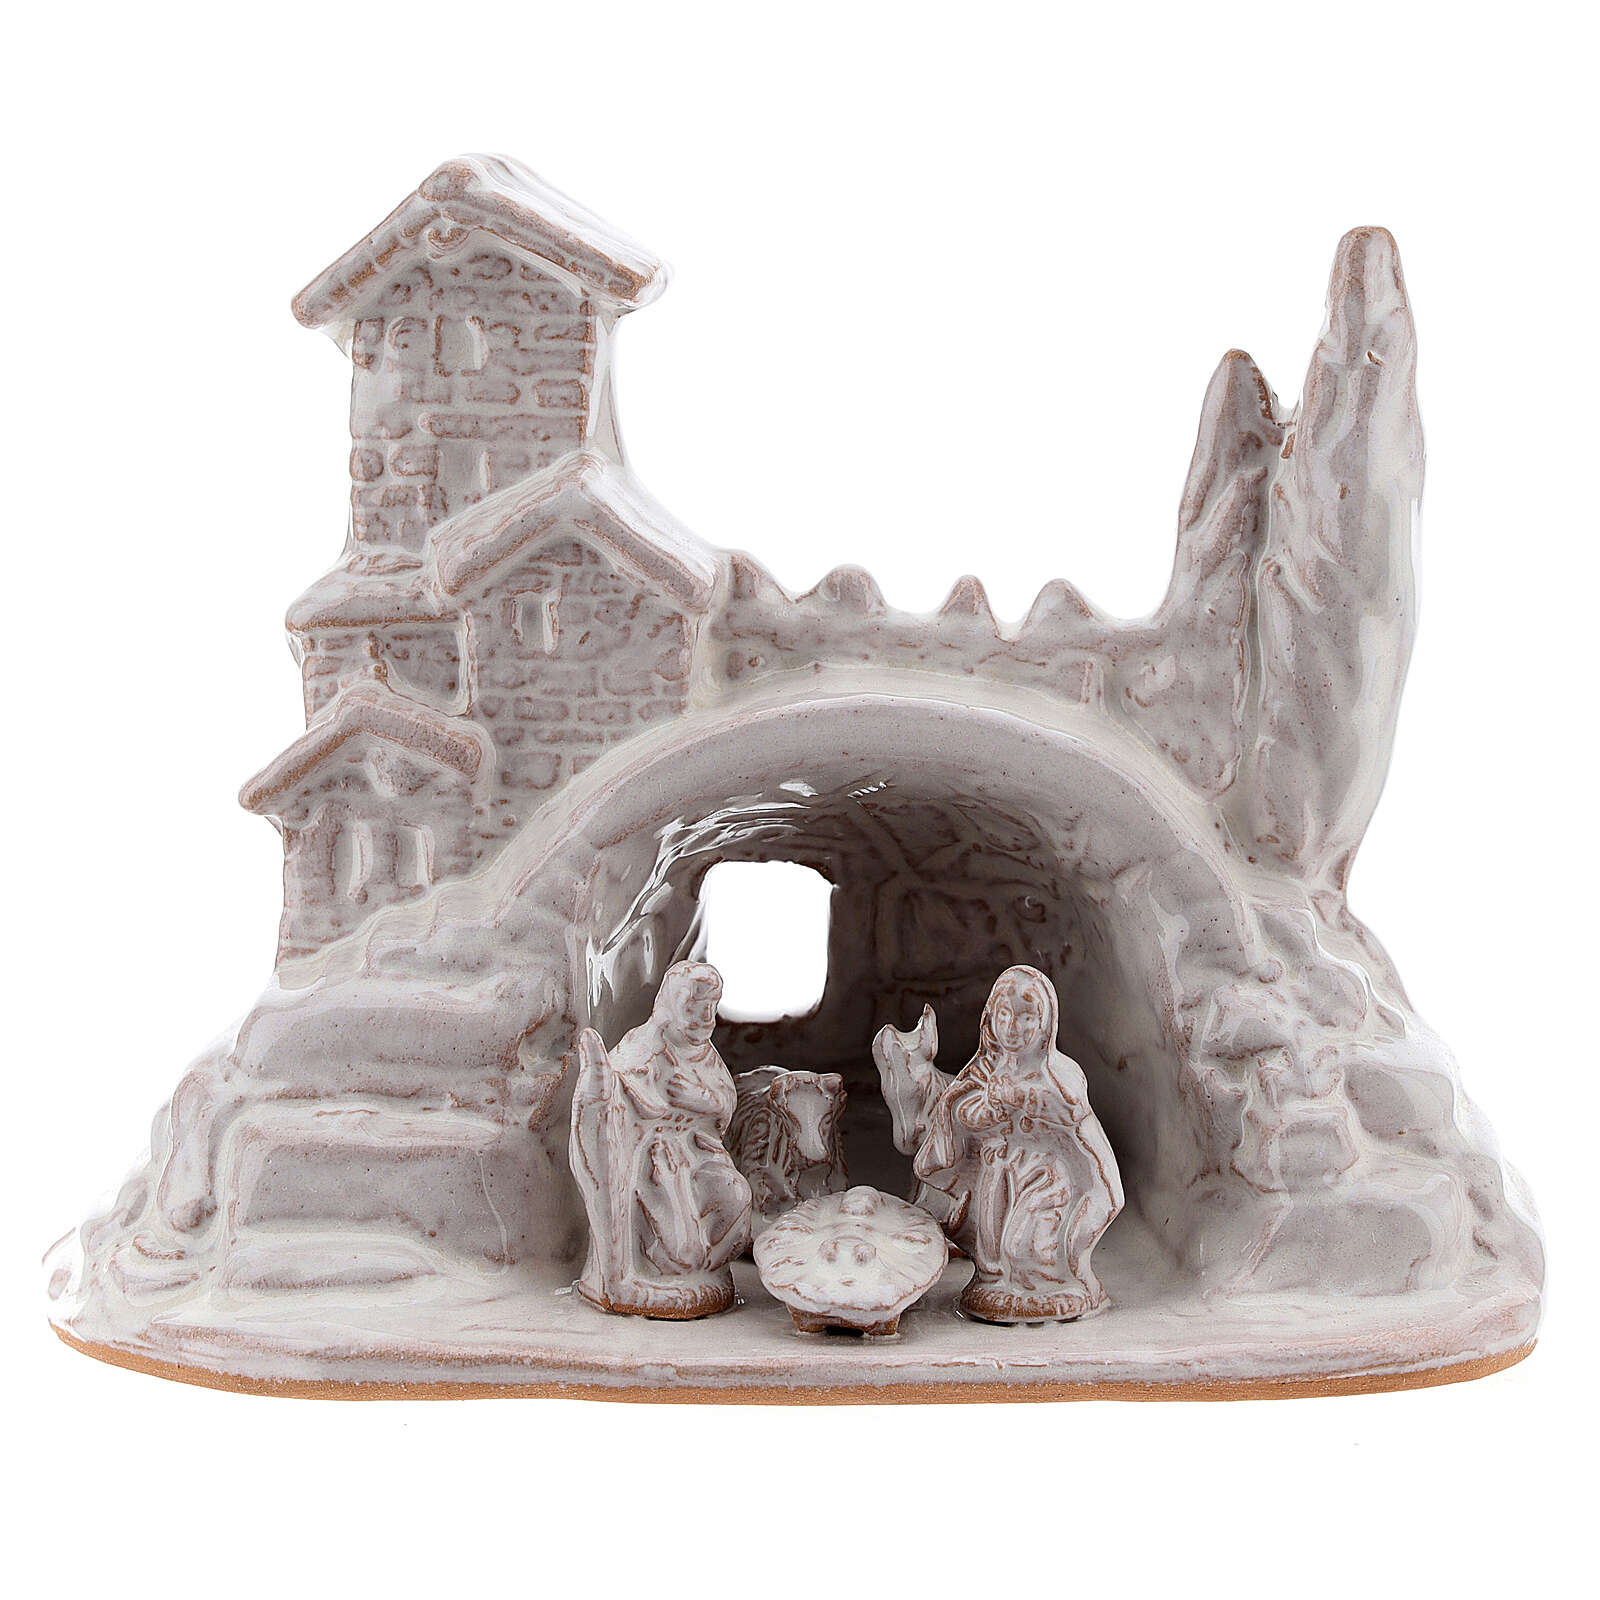 Mini Holy Family with village 10 cm white enamel Deruta terracotta 4